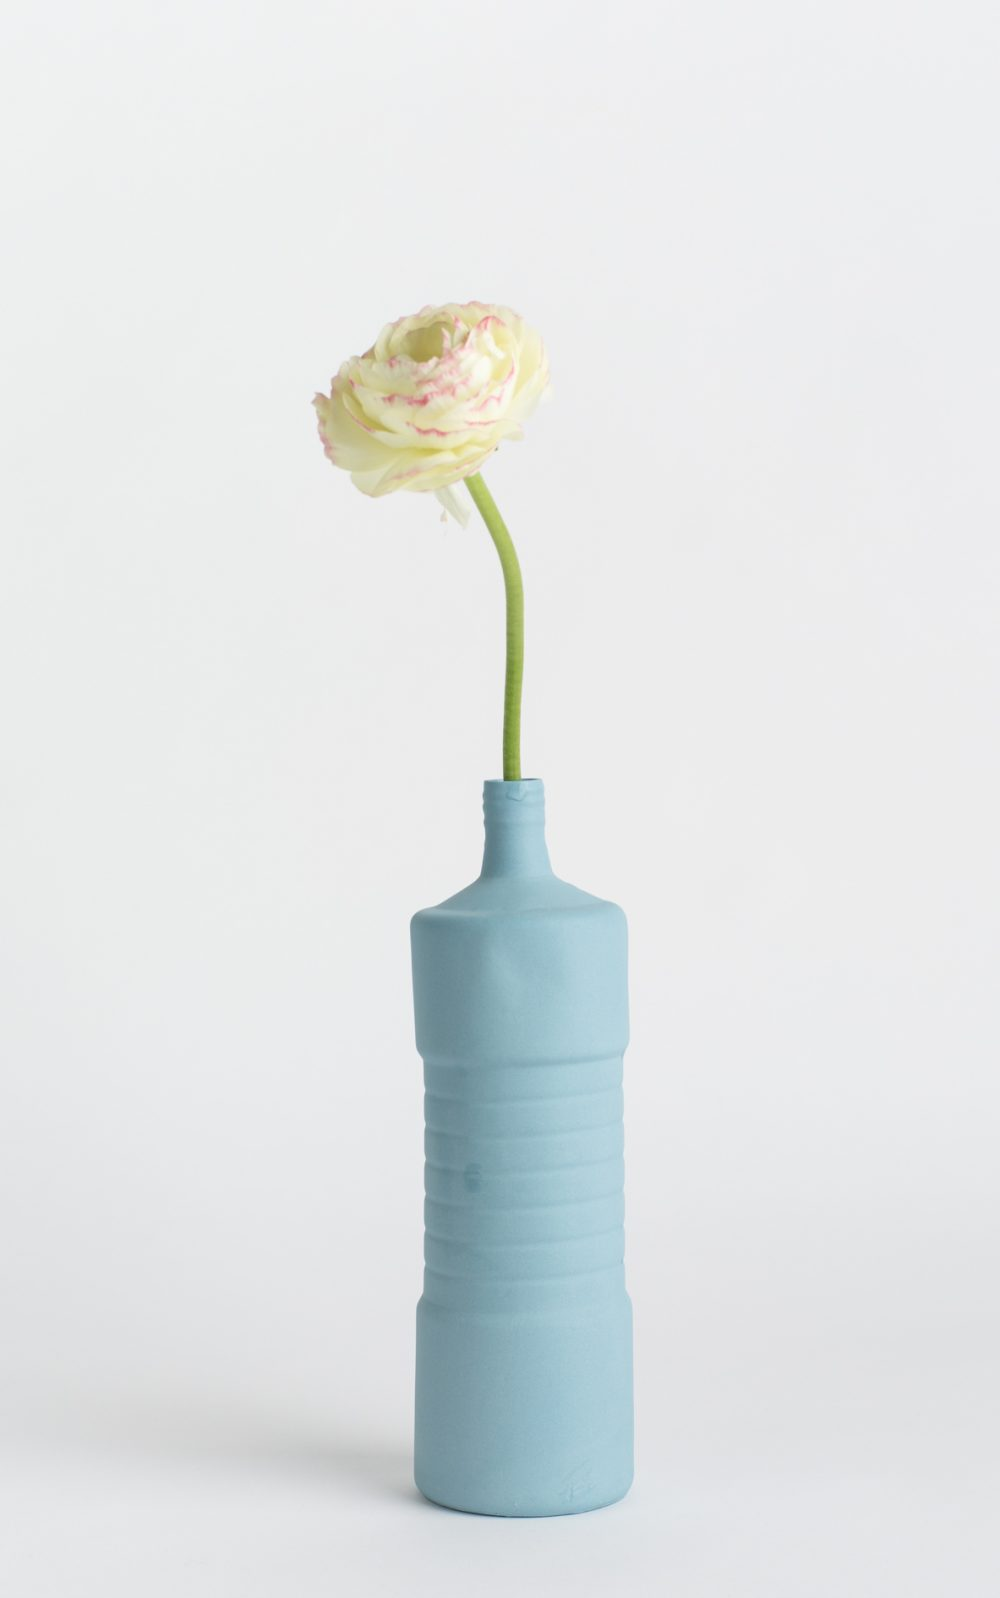 bottle vase #5 light blue with flower